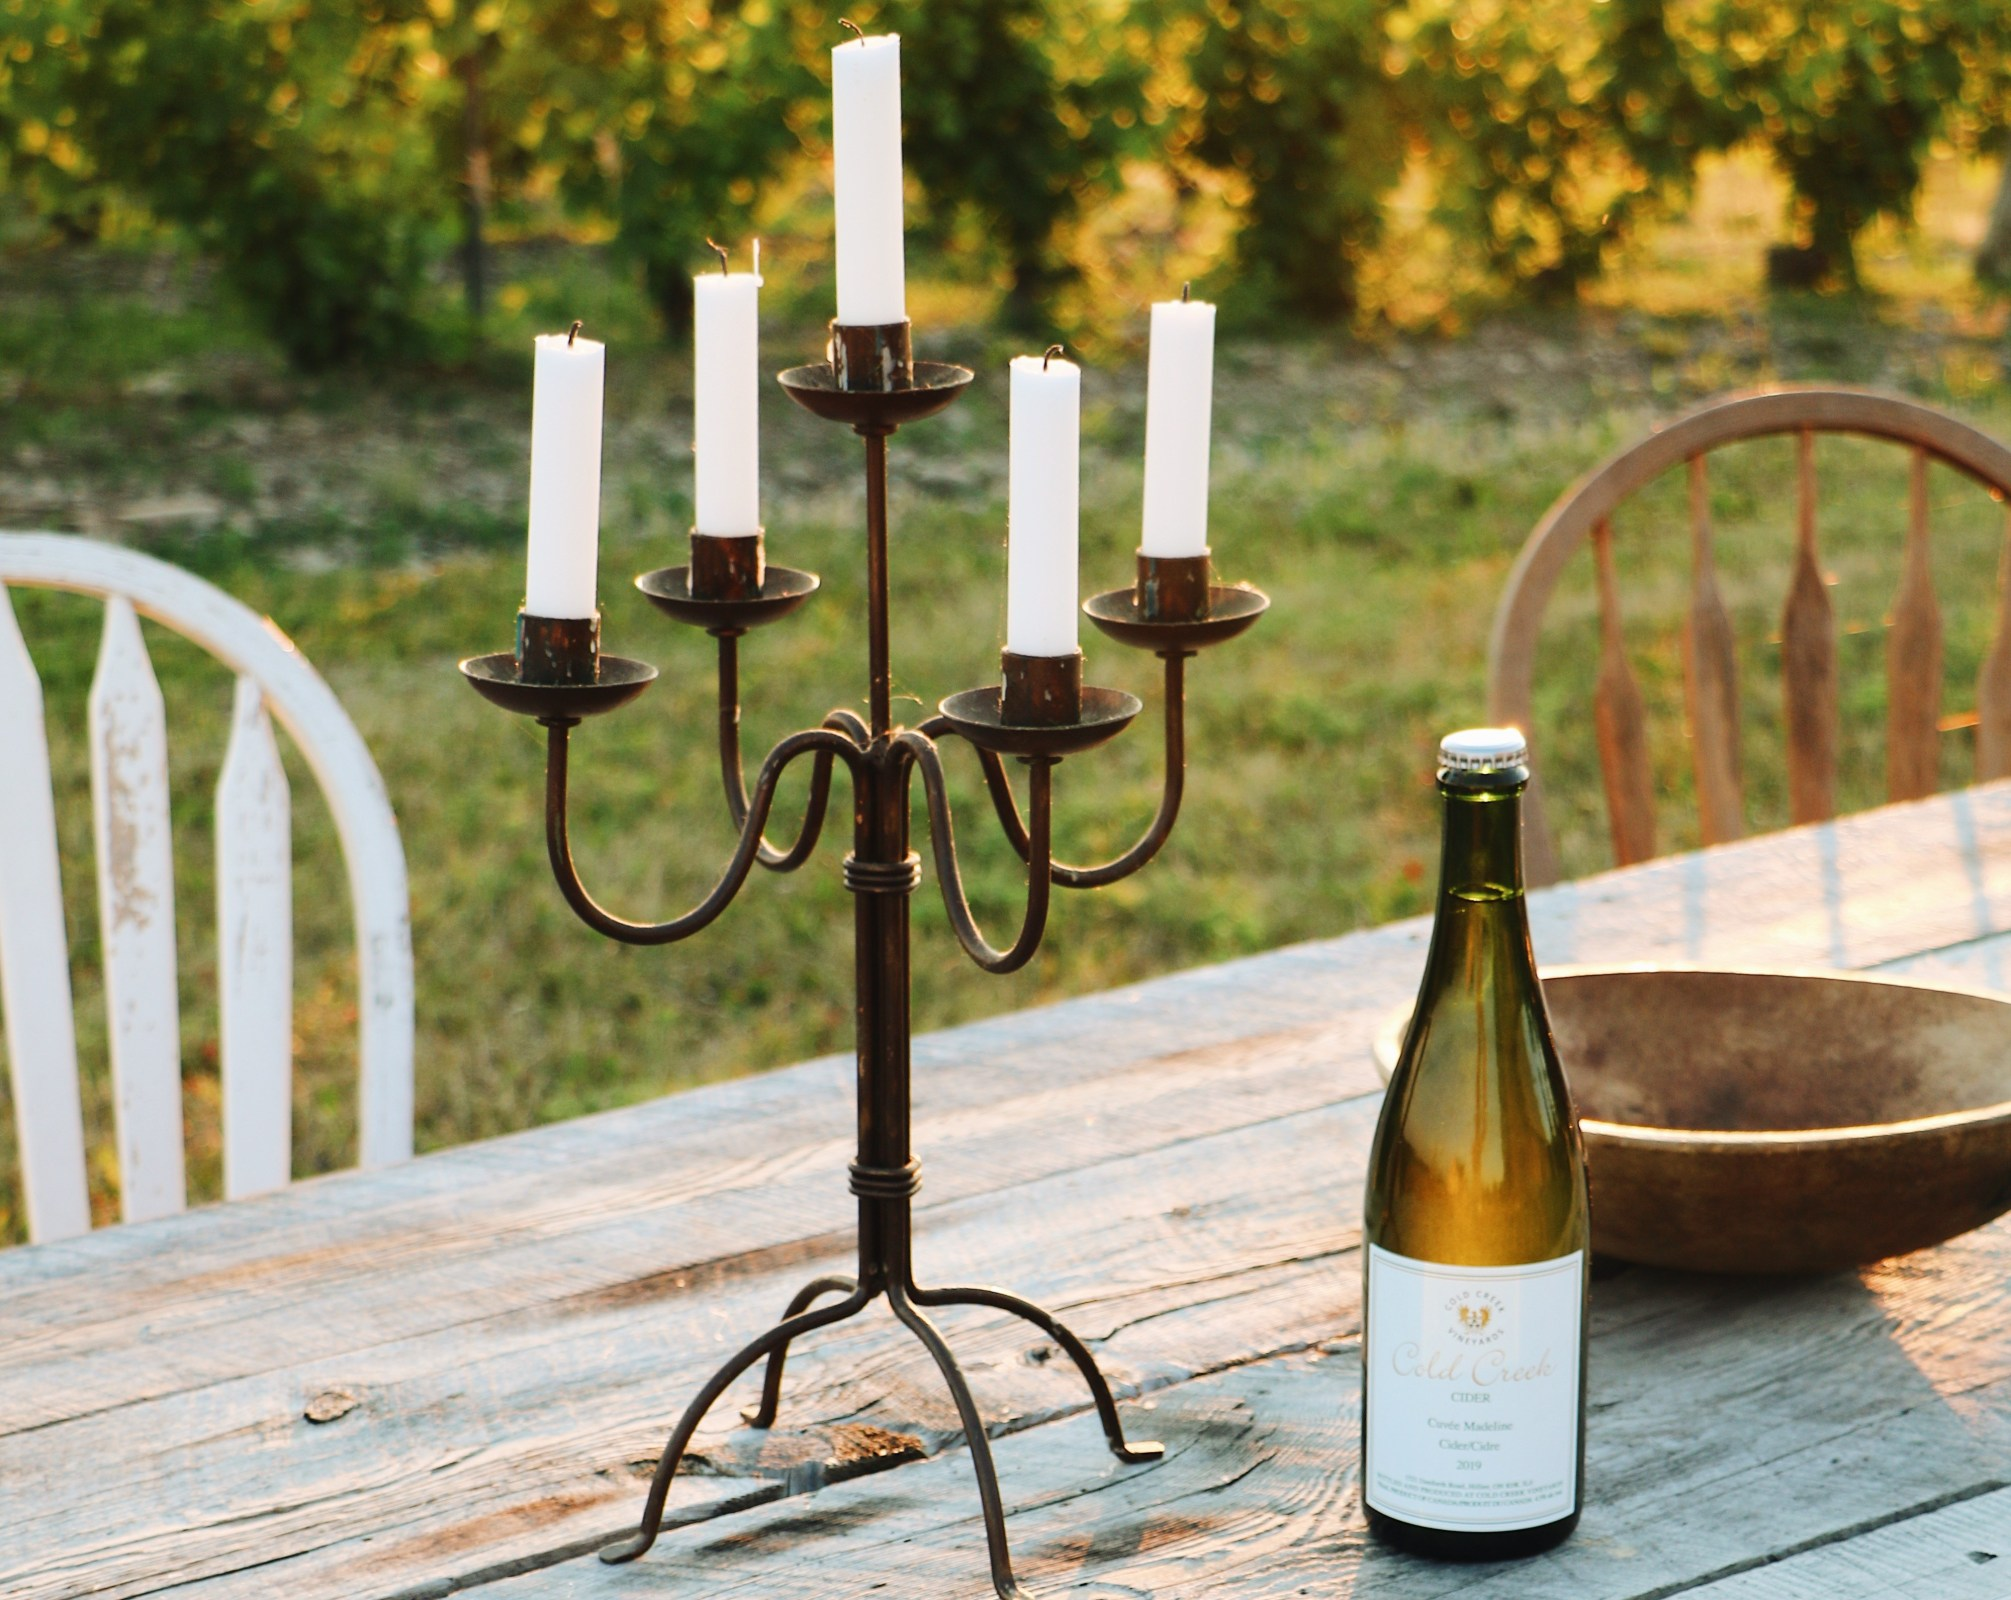 Bottle of cider sits on table beside antique candelabra with vineyard view in the background.